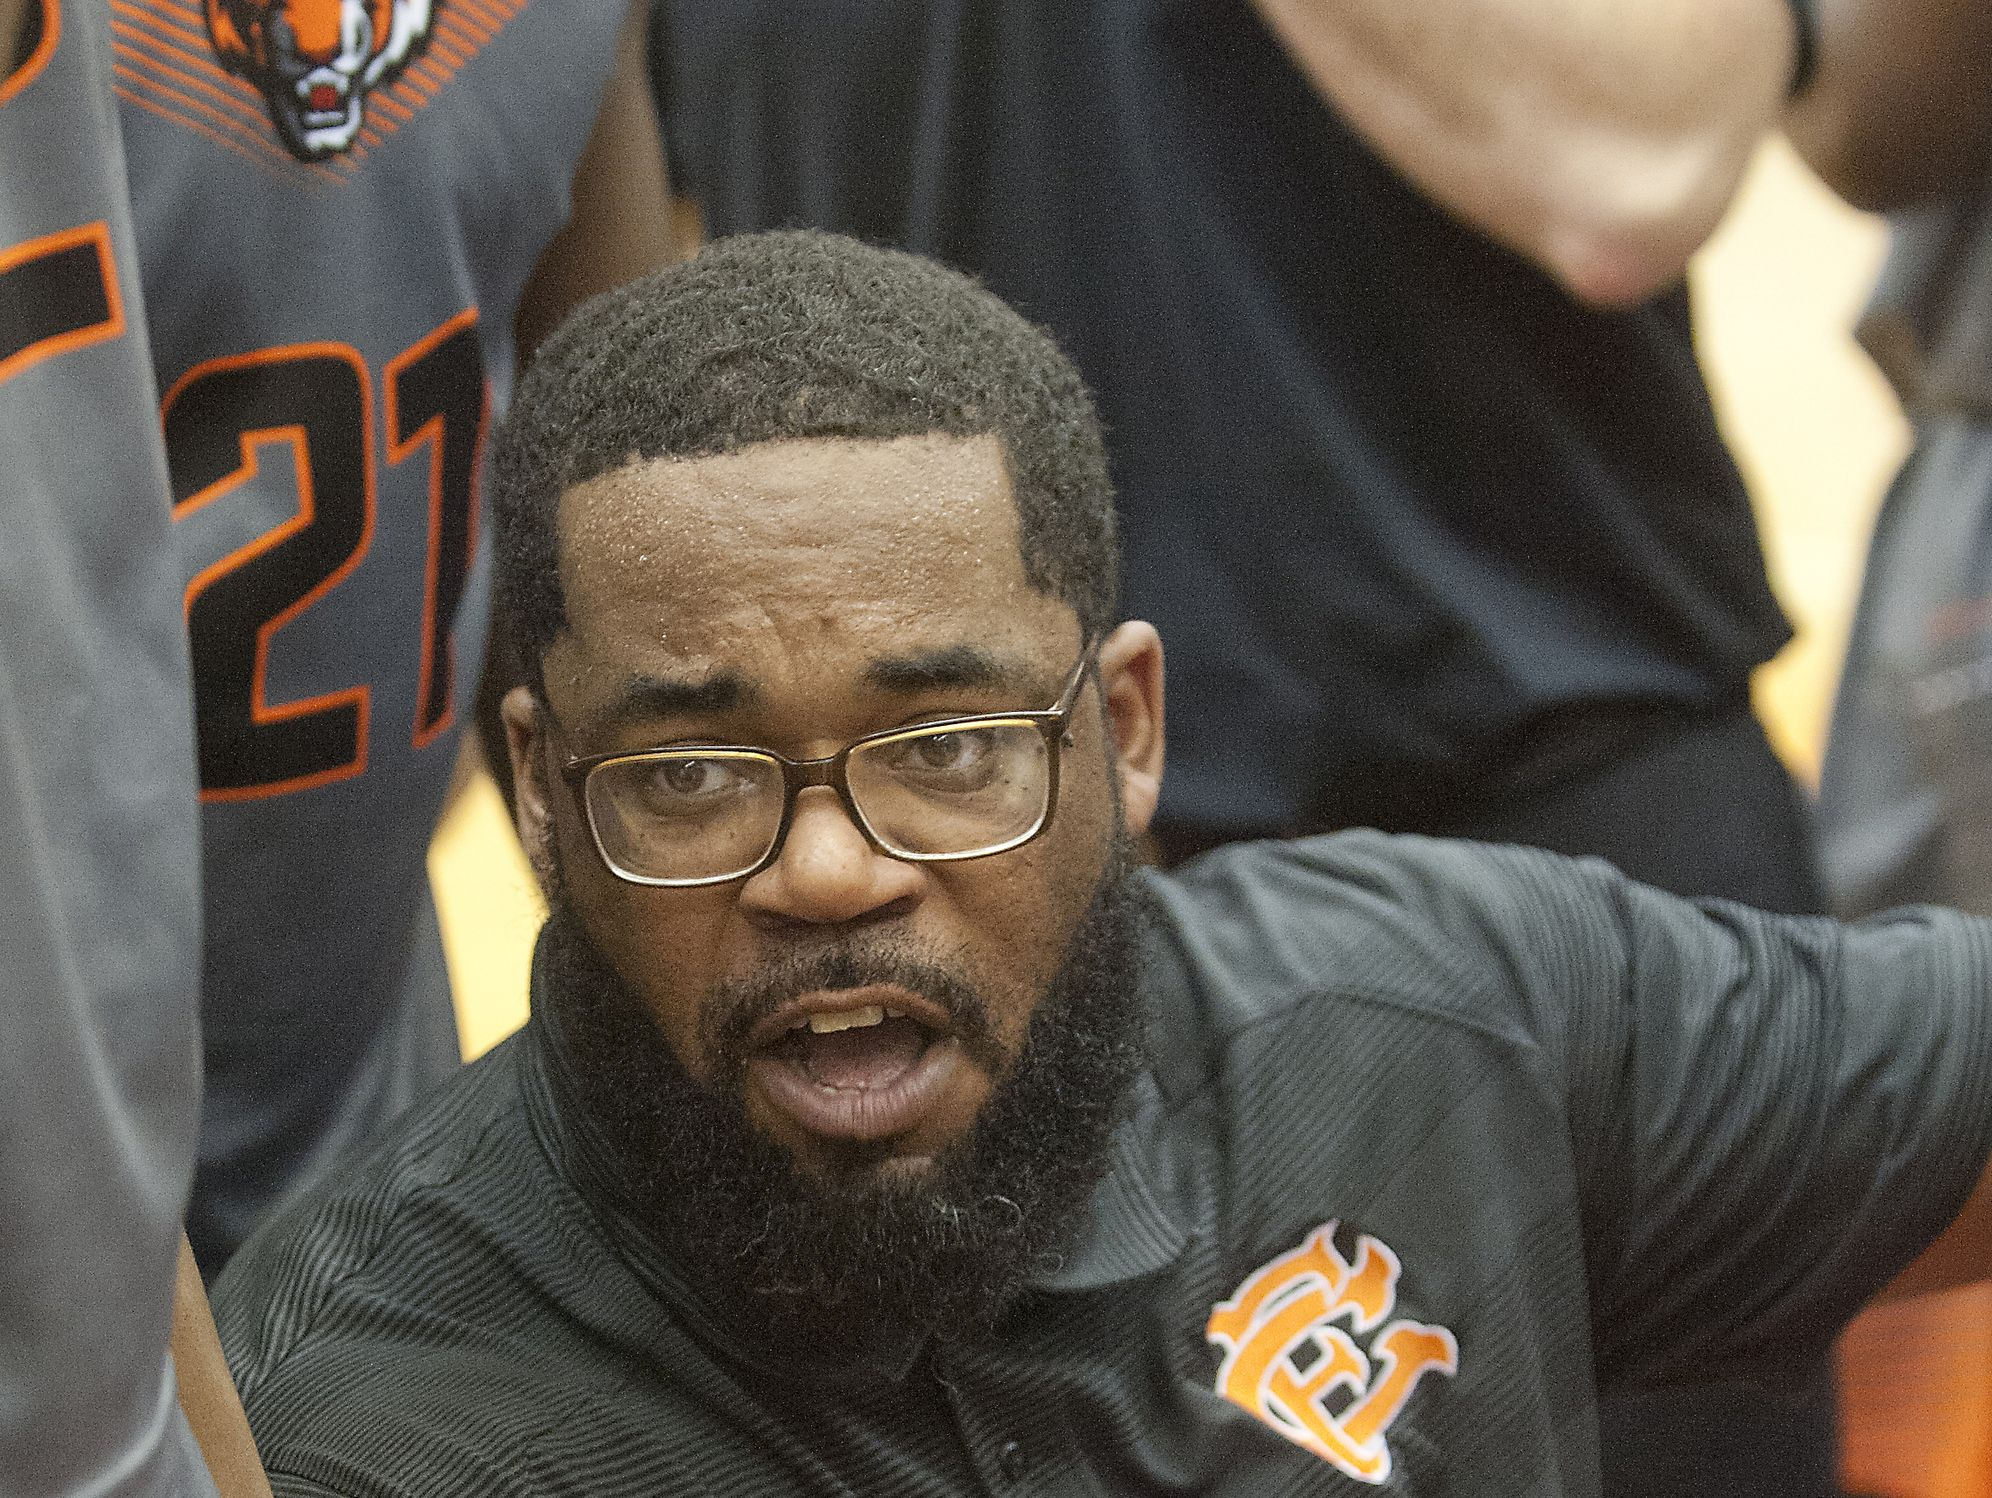 Fern Creek head basketball coach James Schooler, III talks to his players during a time-out. 16 December 2016